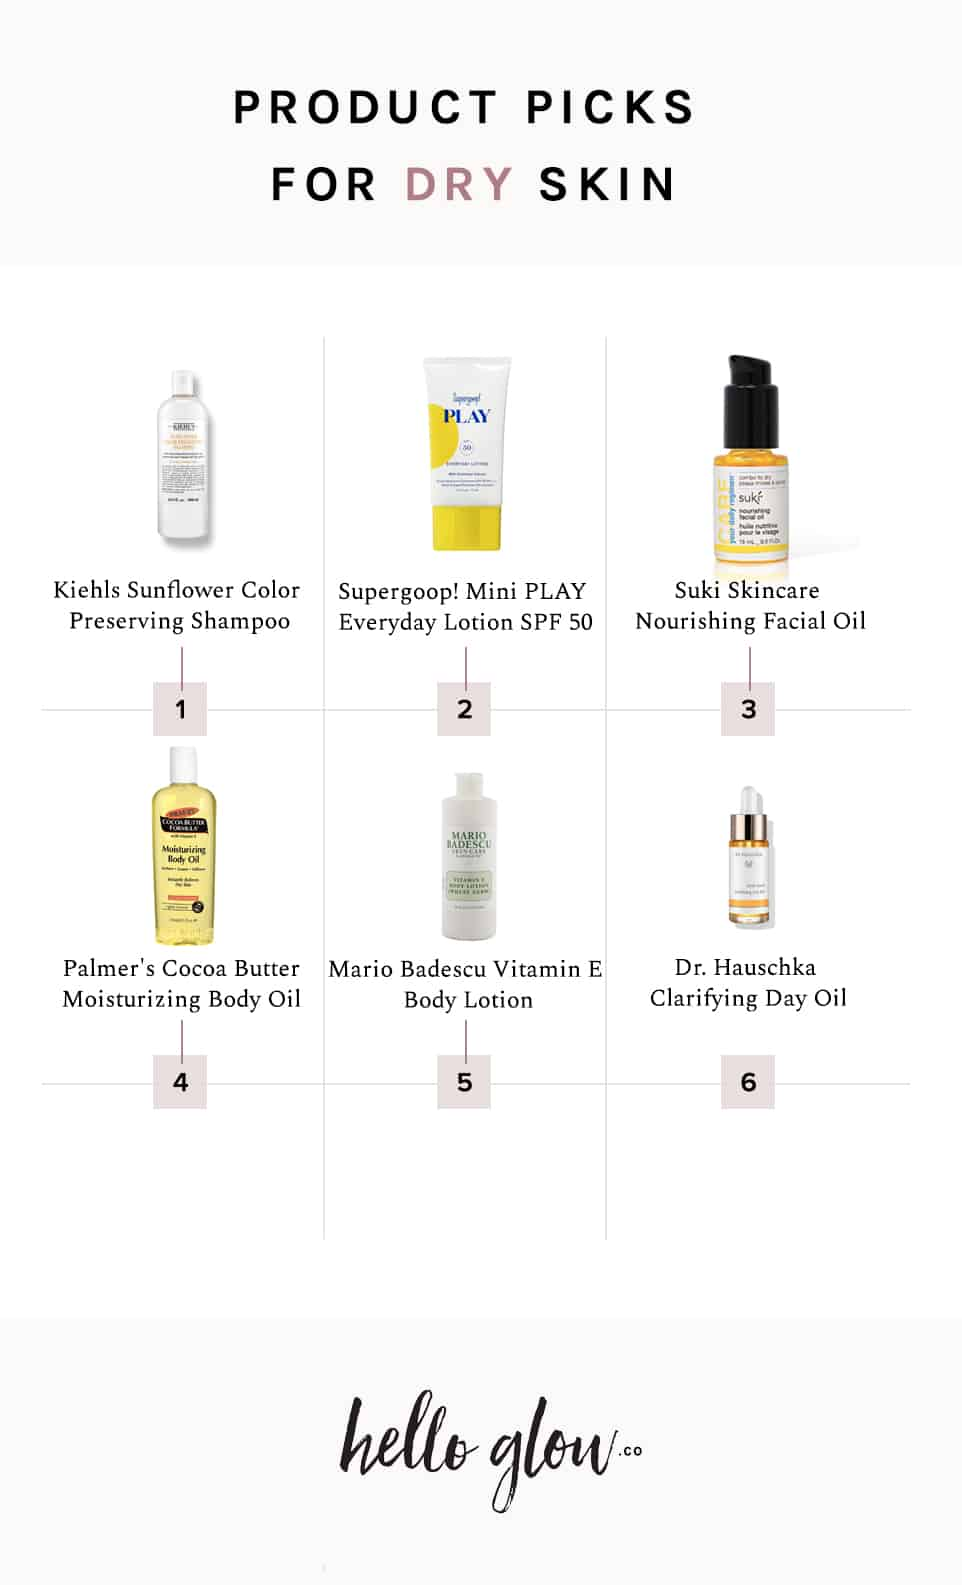 Product Picks for Dry Skin - Hello Glow